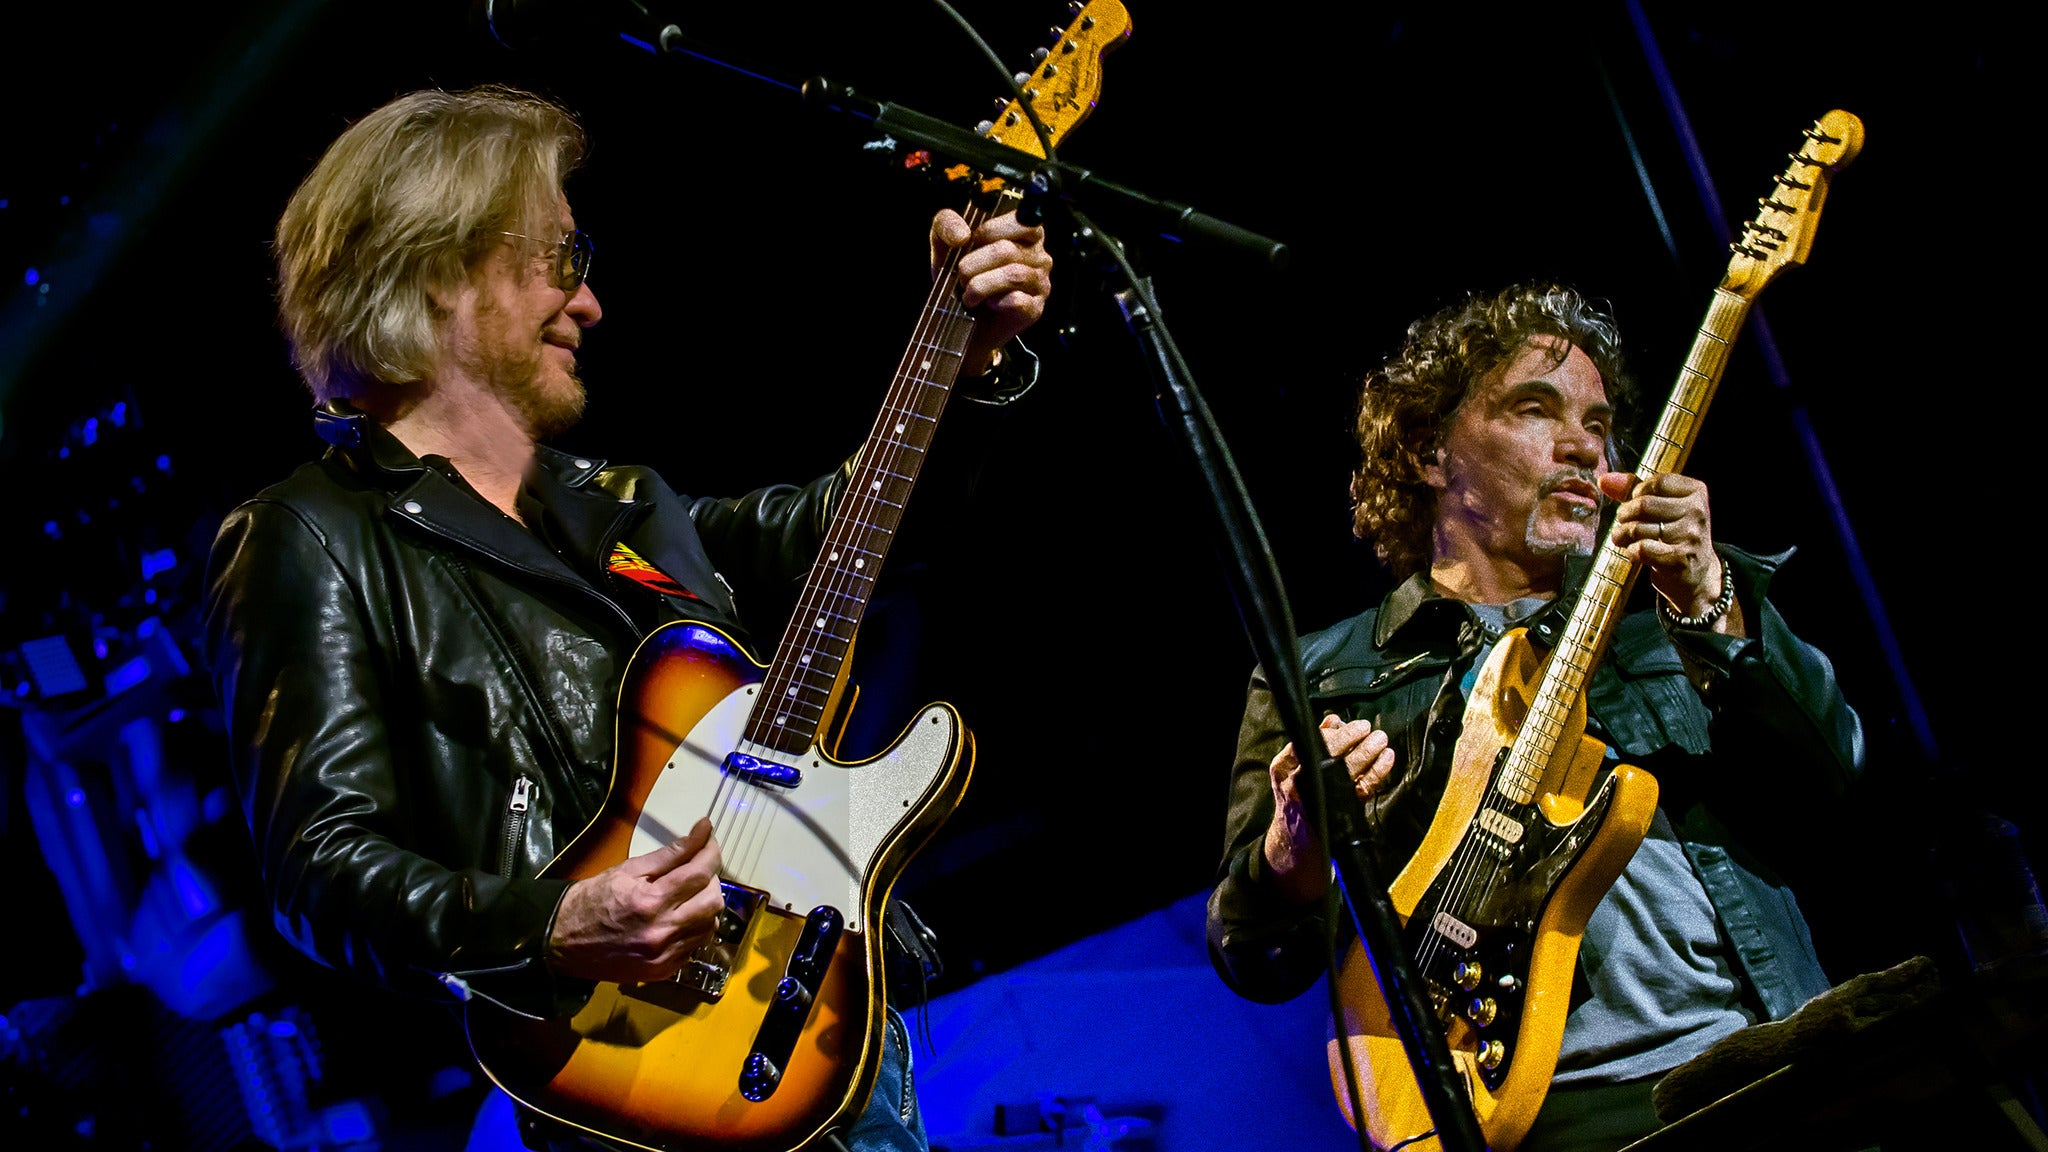 Daryl Hall & John Oates at Germania Insurance Amphitheater